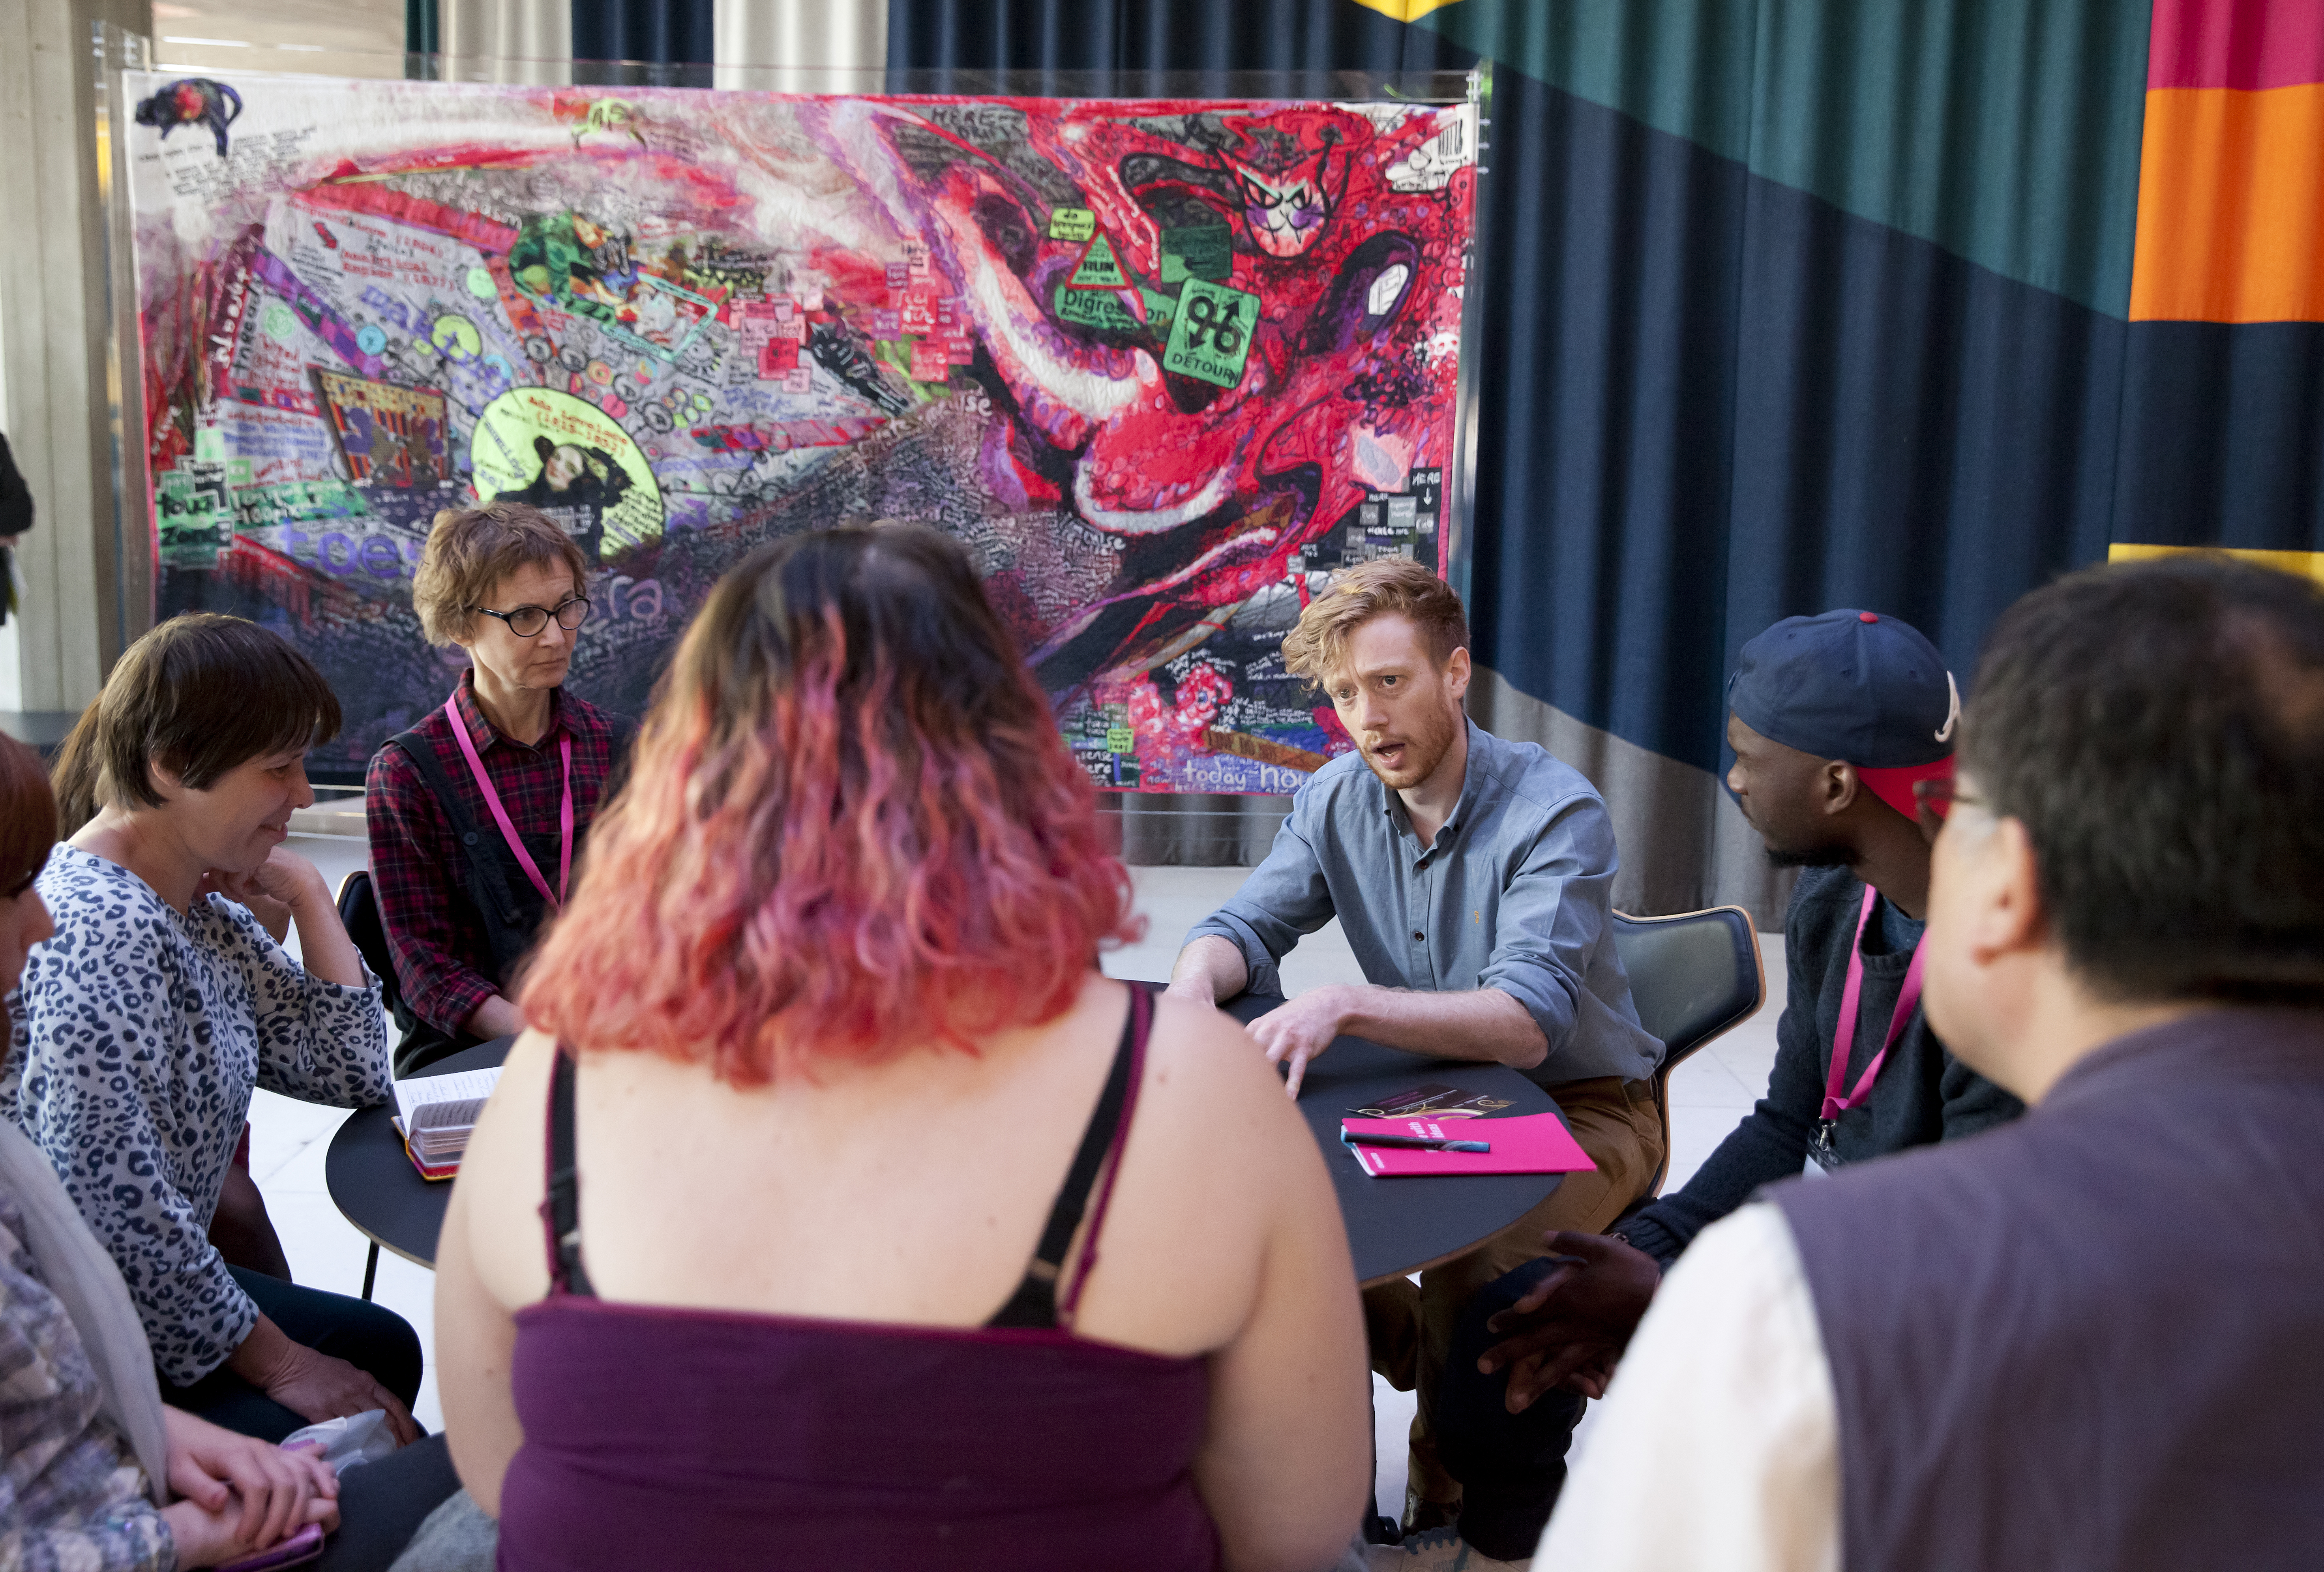 A group of people are sat at a table having a discussion. There is a colourful artwork in the background.